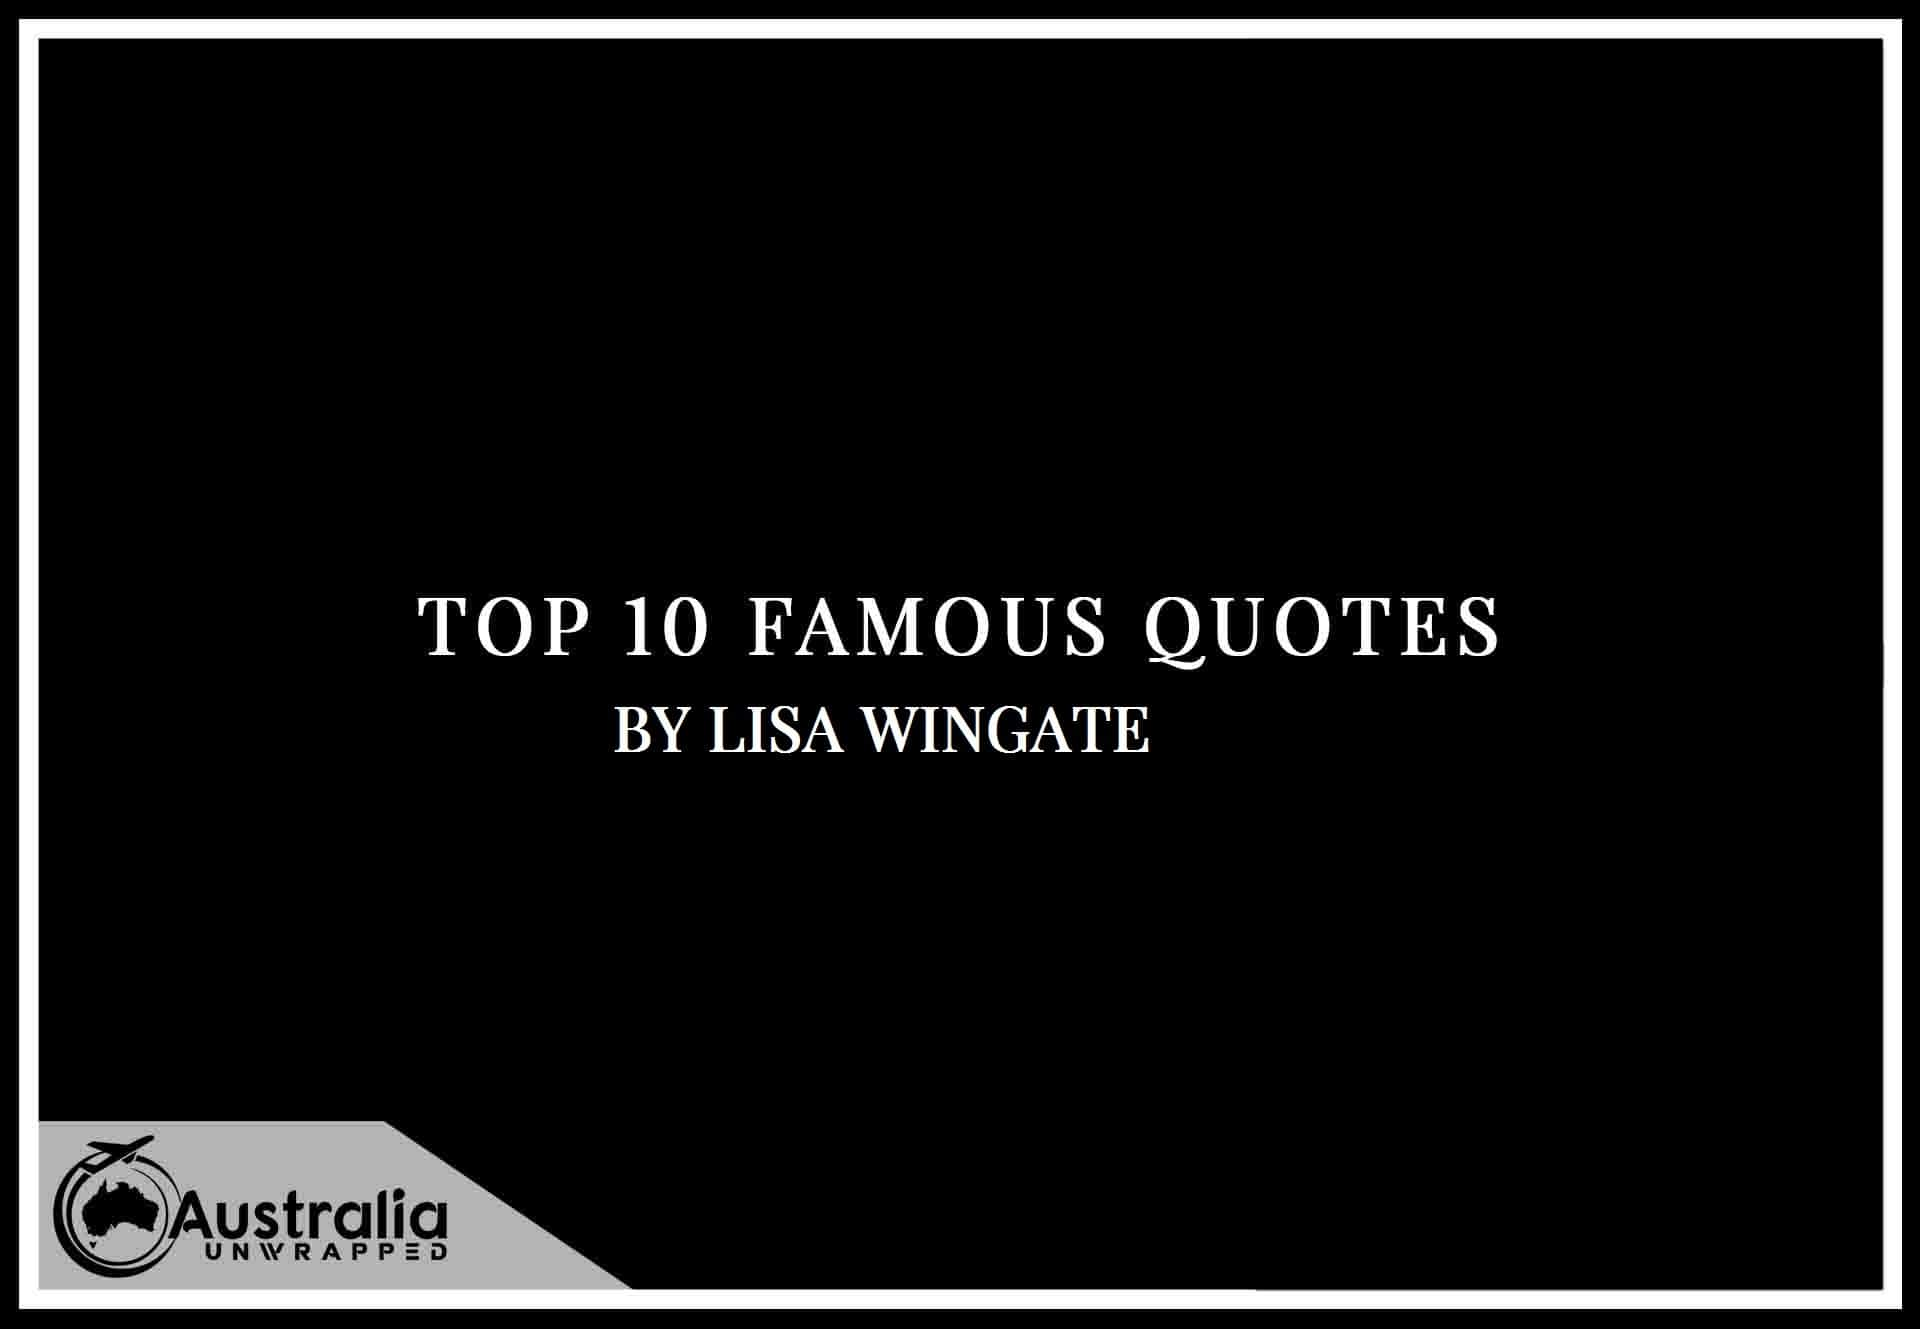 Lisa Wingate's Top 10 Popular and Famous Quotes